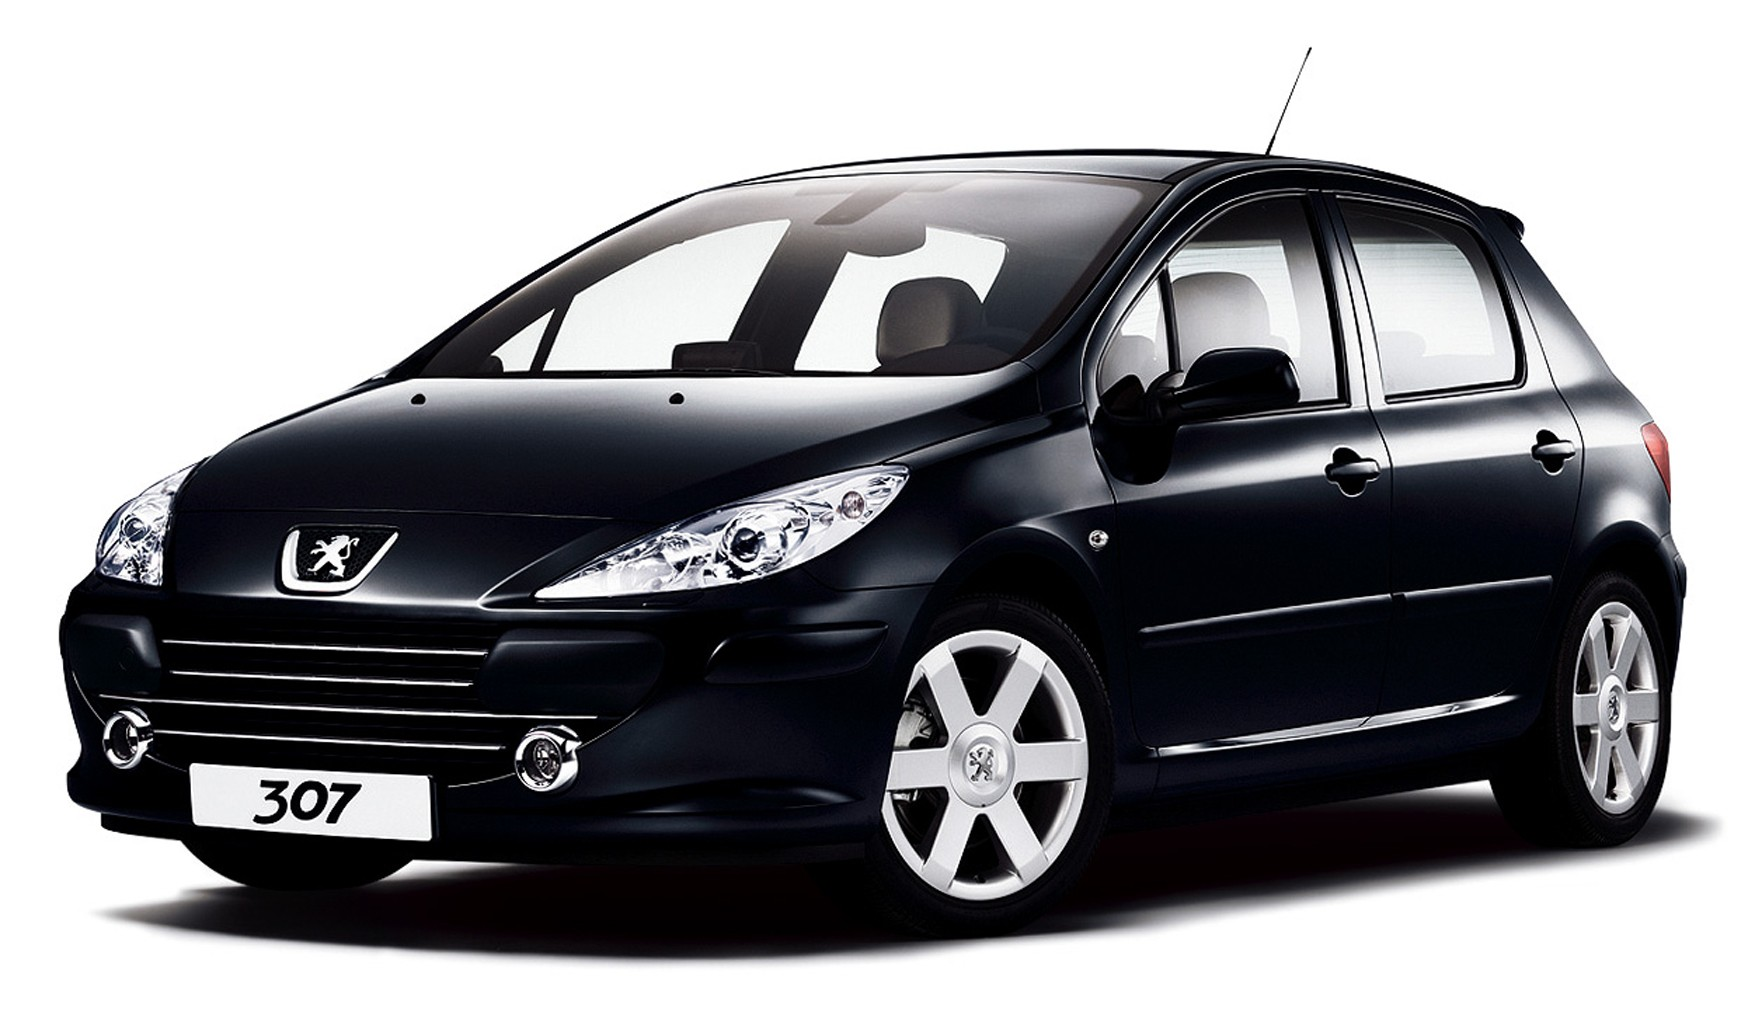 peugeot 307 5 doors specs 2005 2006 2007 2008 autoevolution. Black Bedroom Furniture Sets. Home Design Ideas